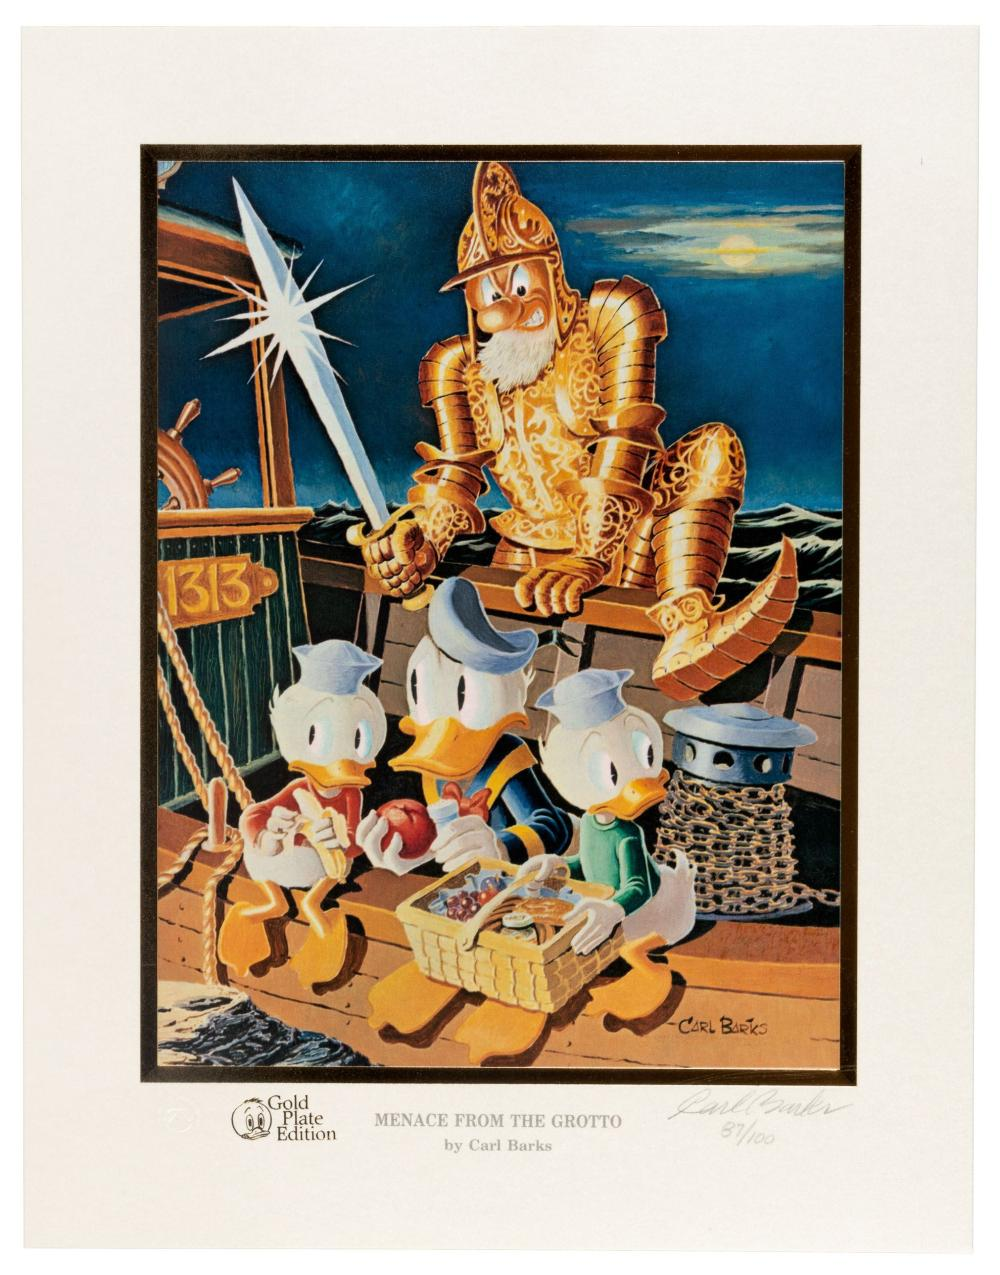 CARL BARKS Signed Limited Litho * Ghost from the Grotto